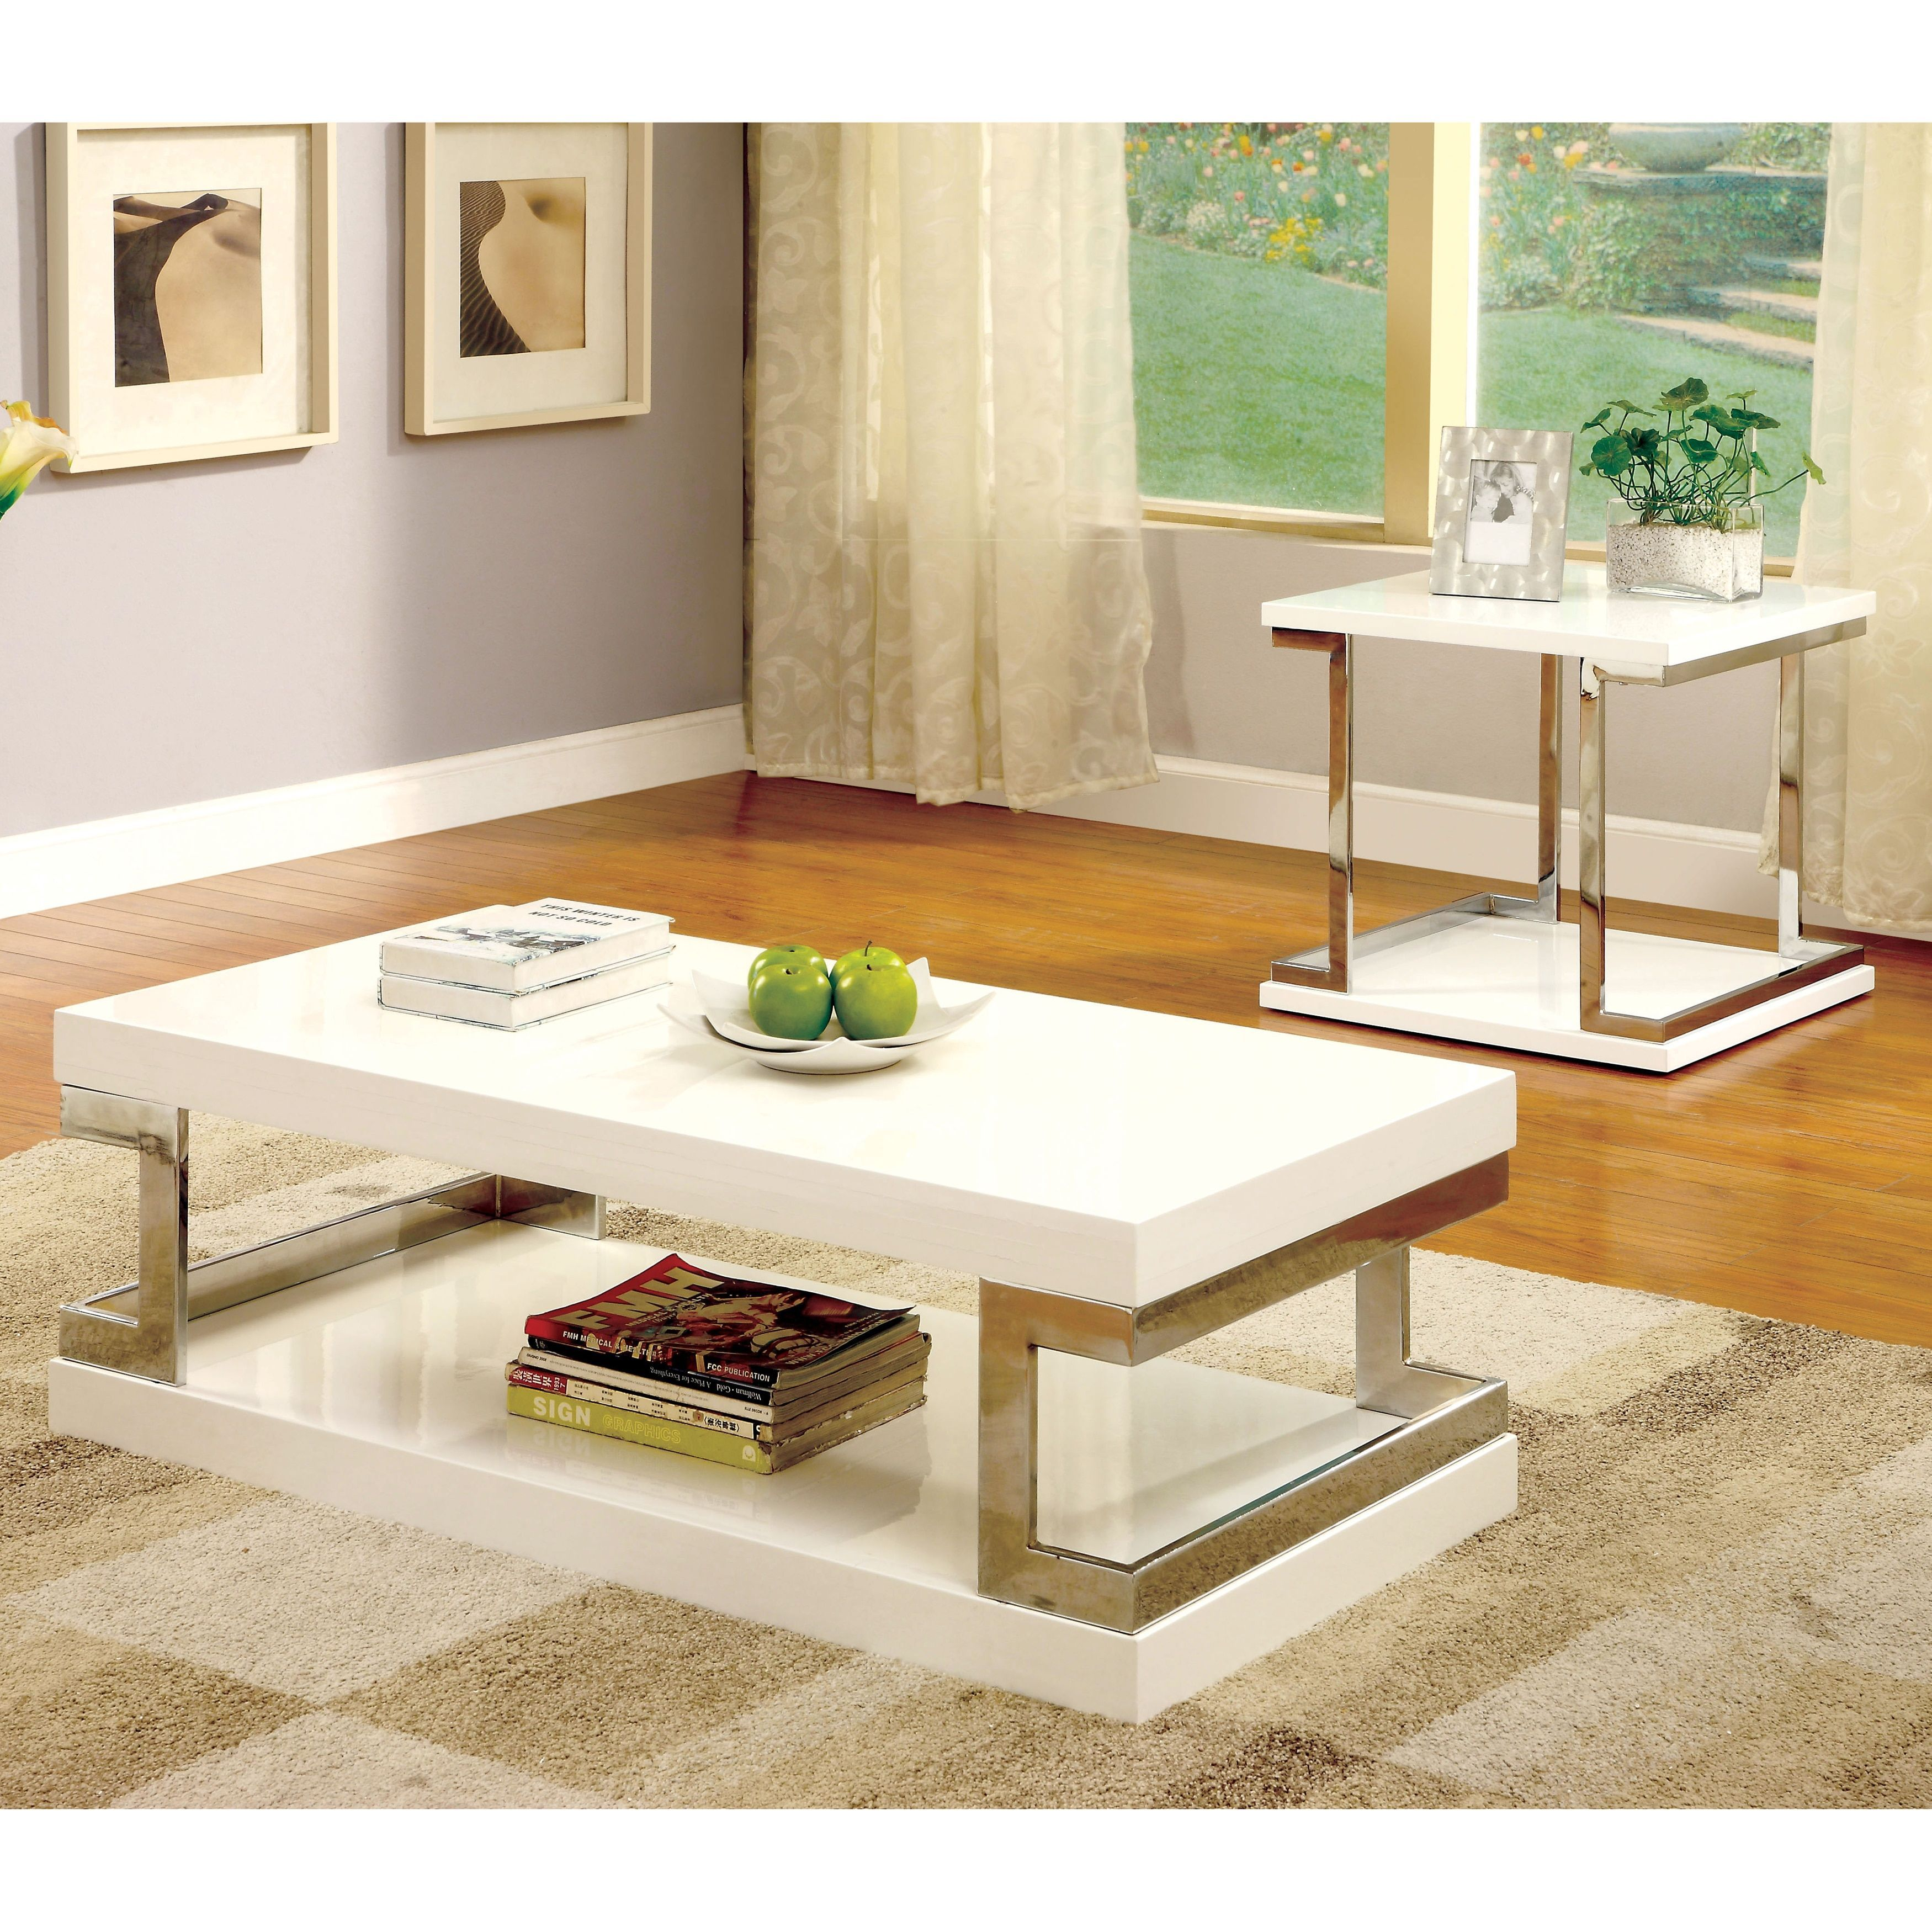 Overstock Com Online Shopping Bedding Furniture Electronics Jewelry Clothing More Furniture Of America Coffee Table Furniture [ 3500 x 3500 Pixel ]